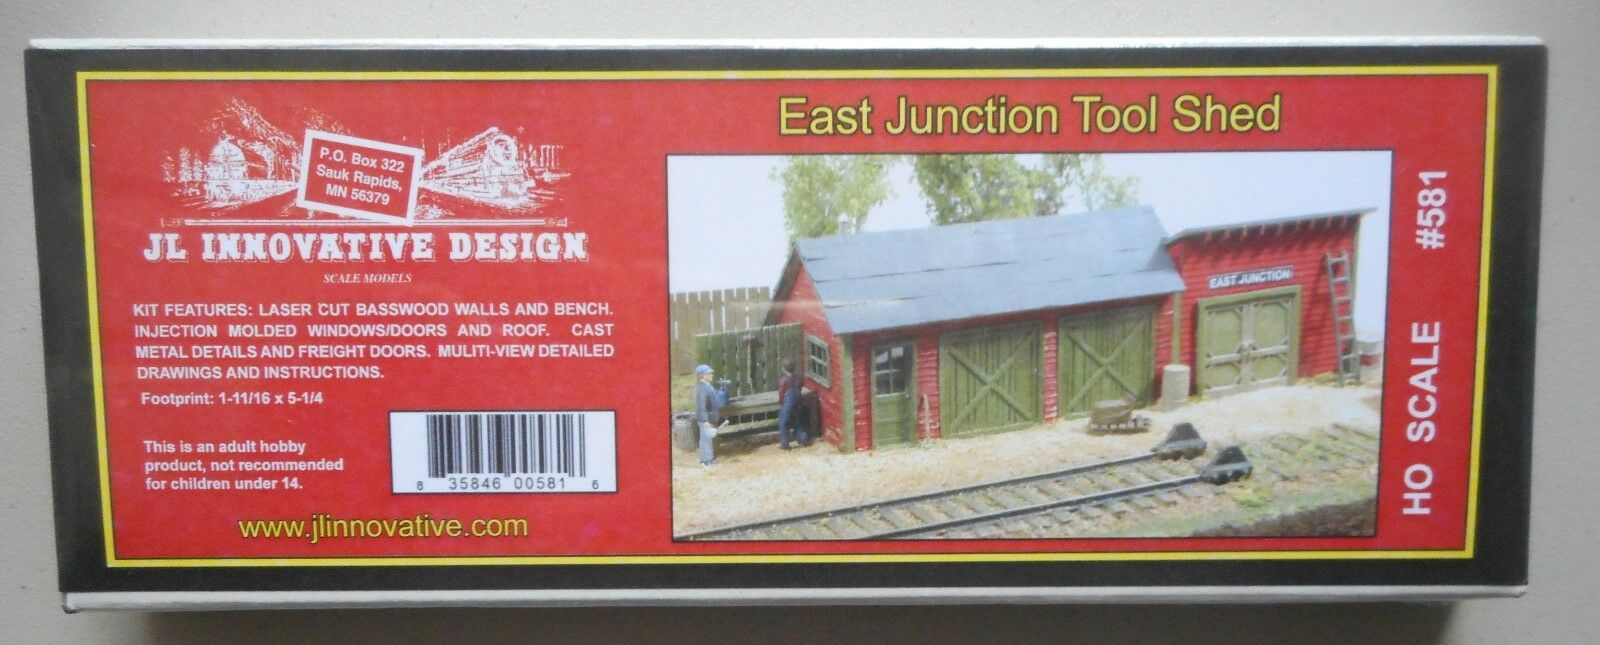 EAST JUNCTION TOOL SHED KIT HO 1:87 SCALE DIORAMA TRAIN LAYOUT JL  INNOVATIVE 581